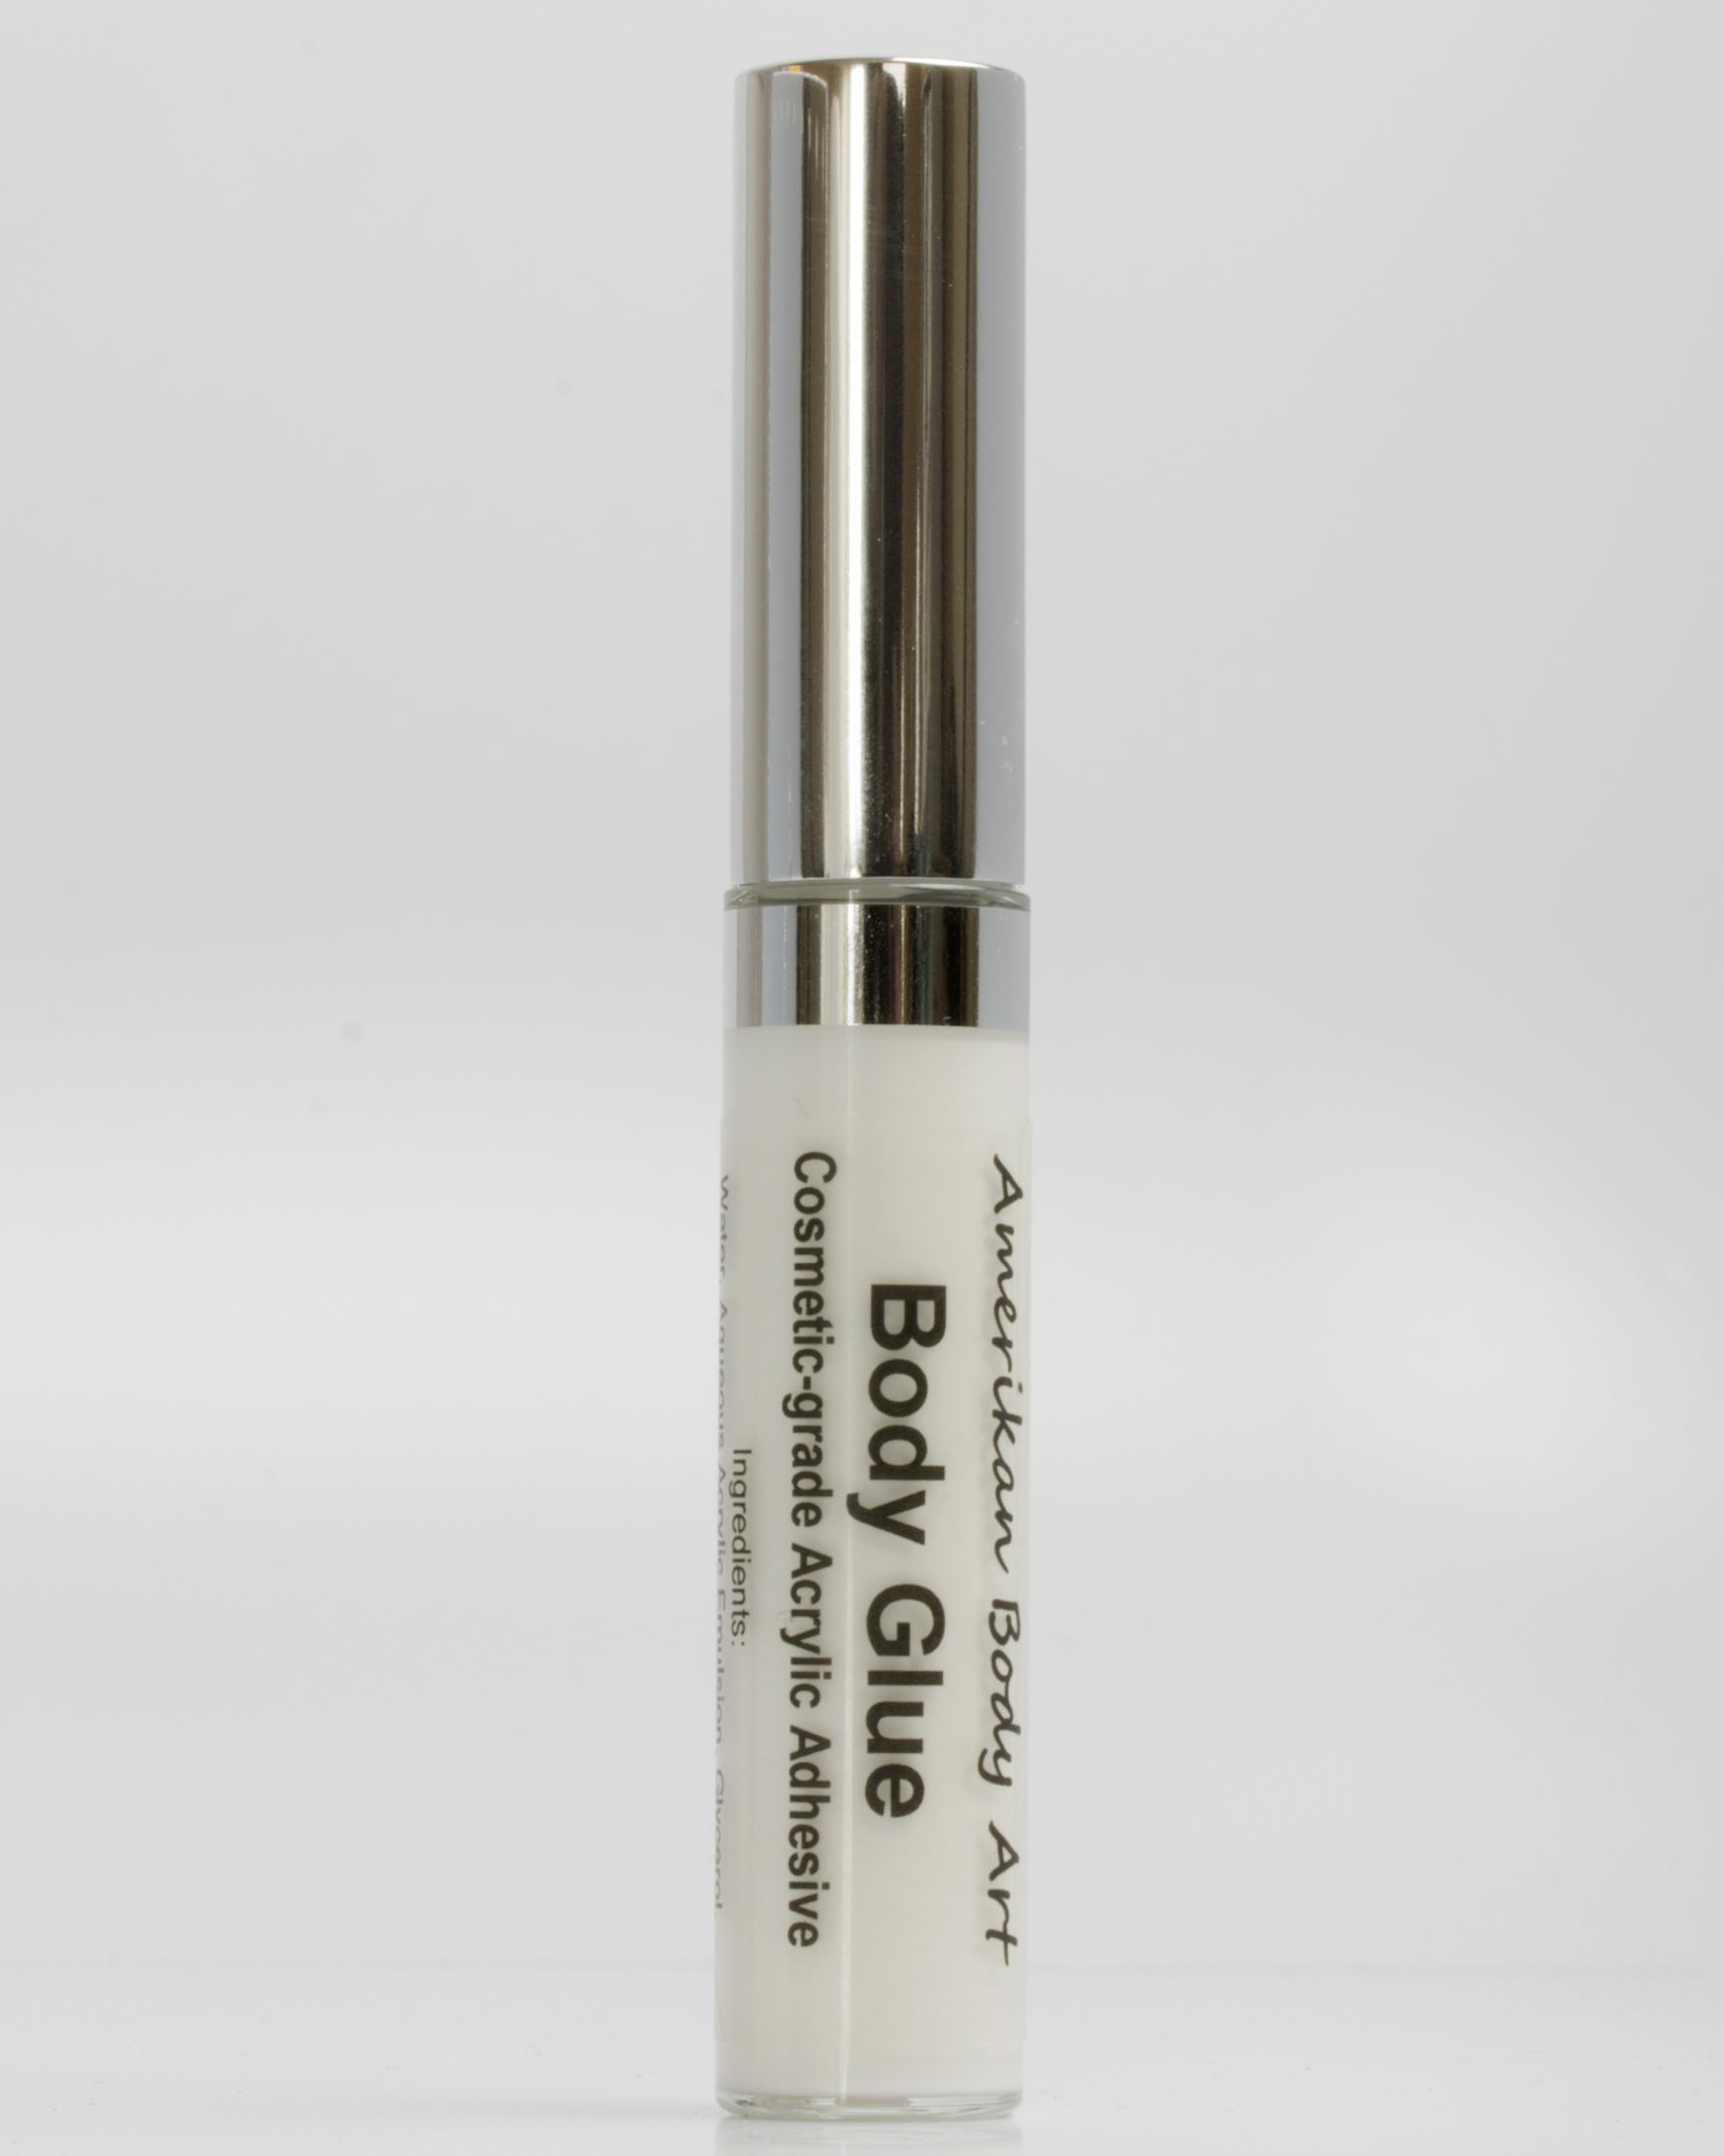 Body Glue 10ml vial - Free with purchase of 75 stencils